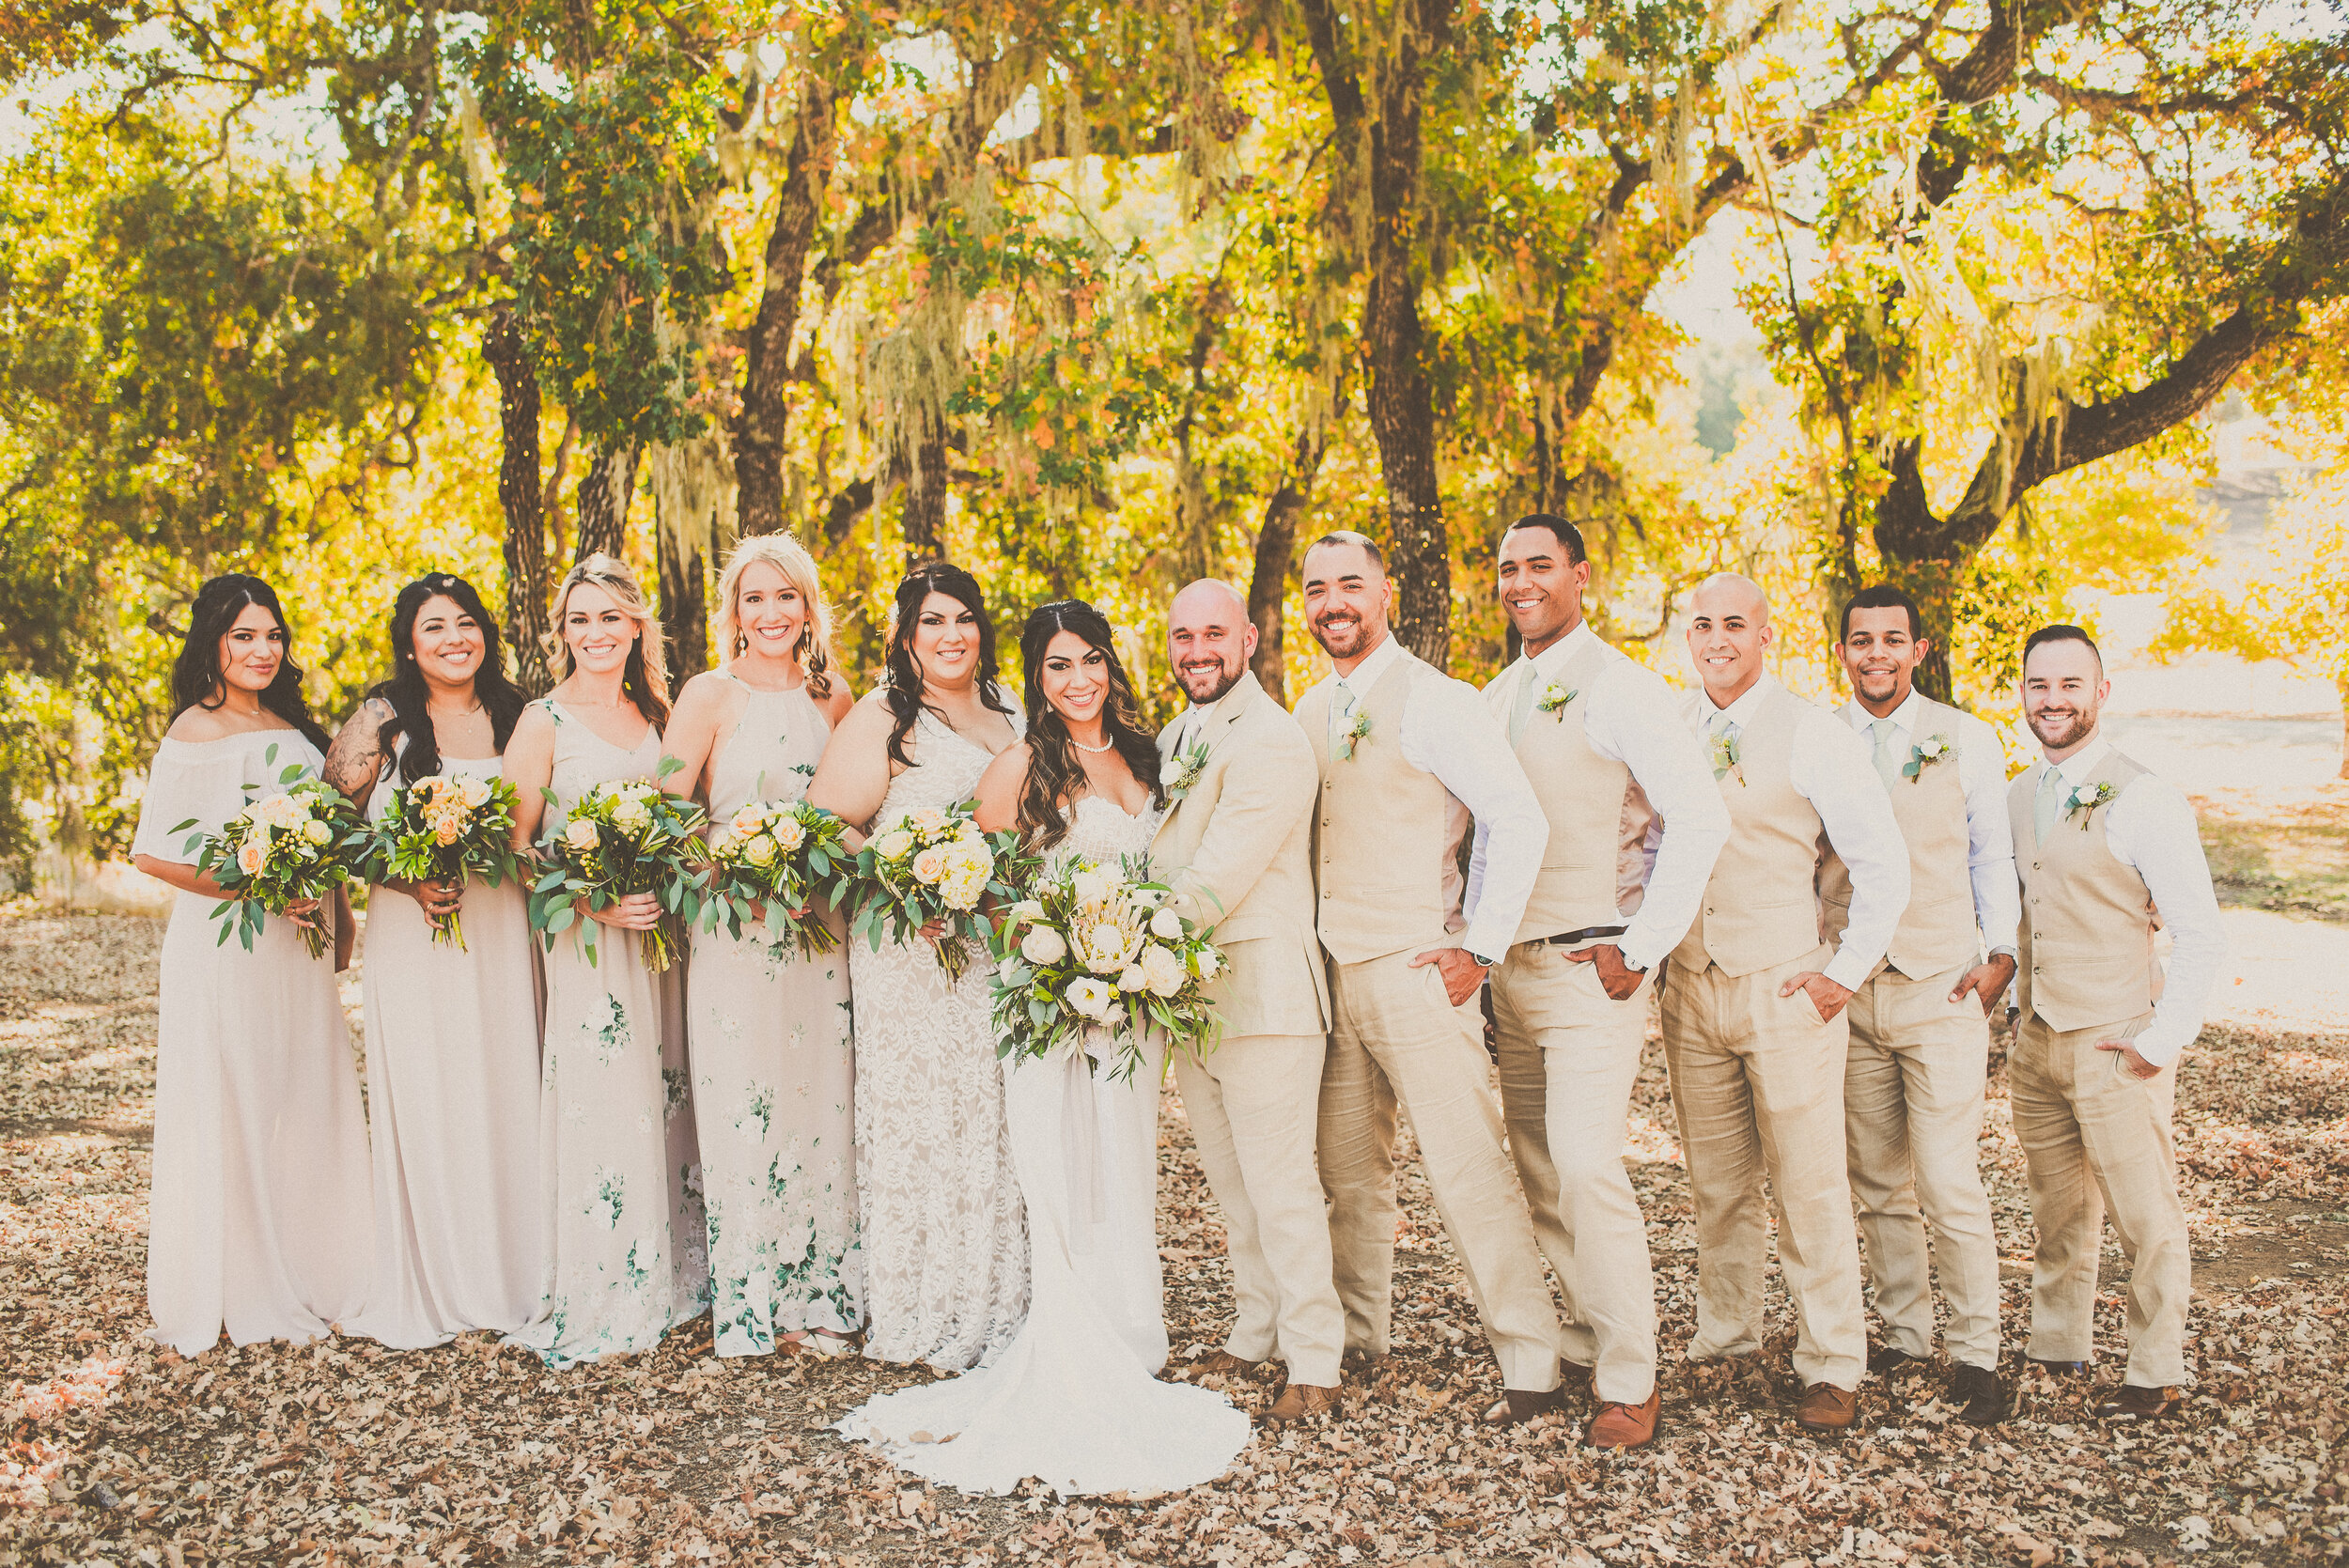 Motter Wedding - Wedding Party Portraits-1.jpg